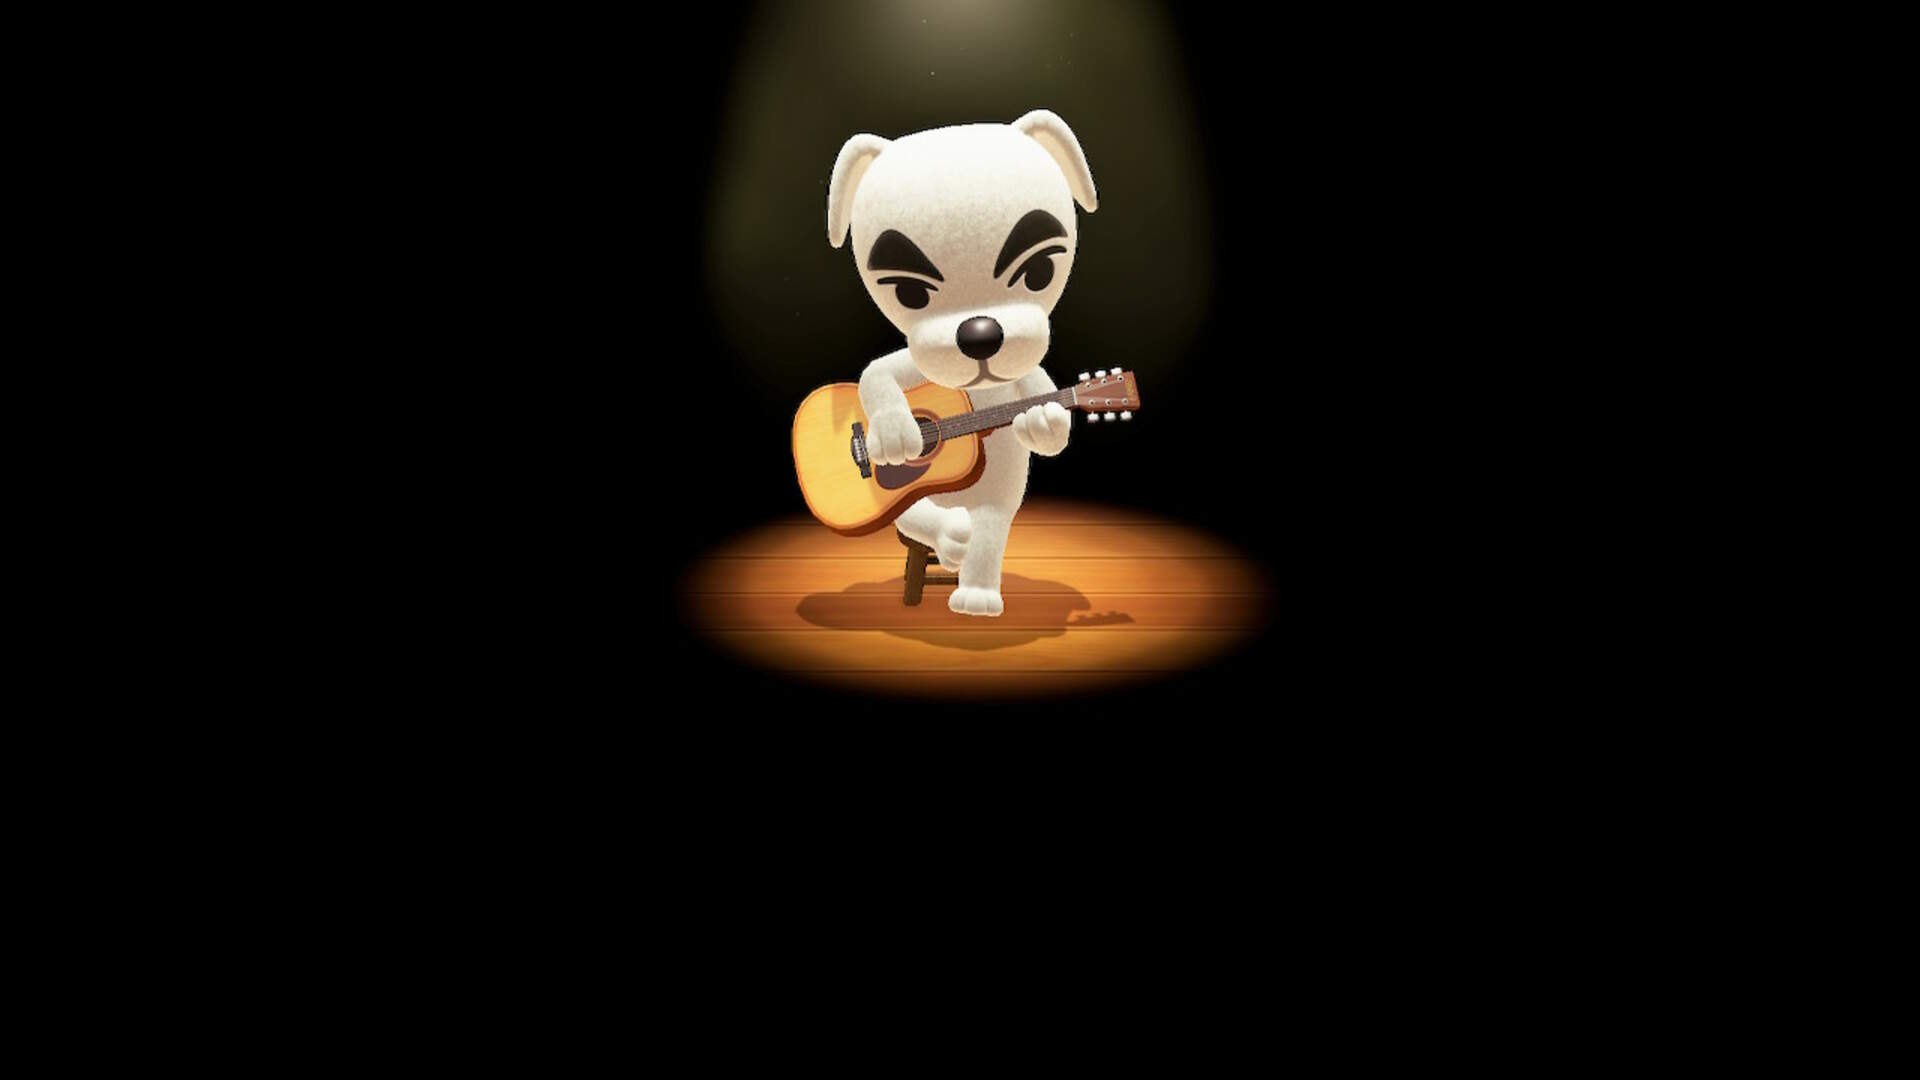 Animal Crossing New Horizons: How to Get KK Slider to Visit Your Island